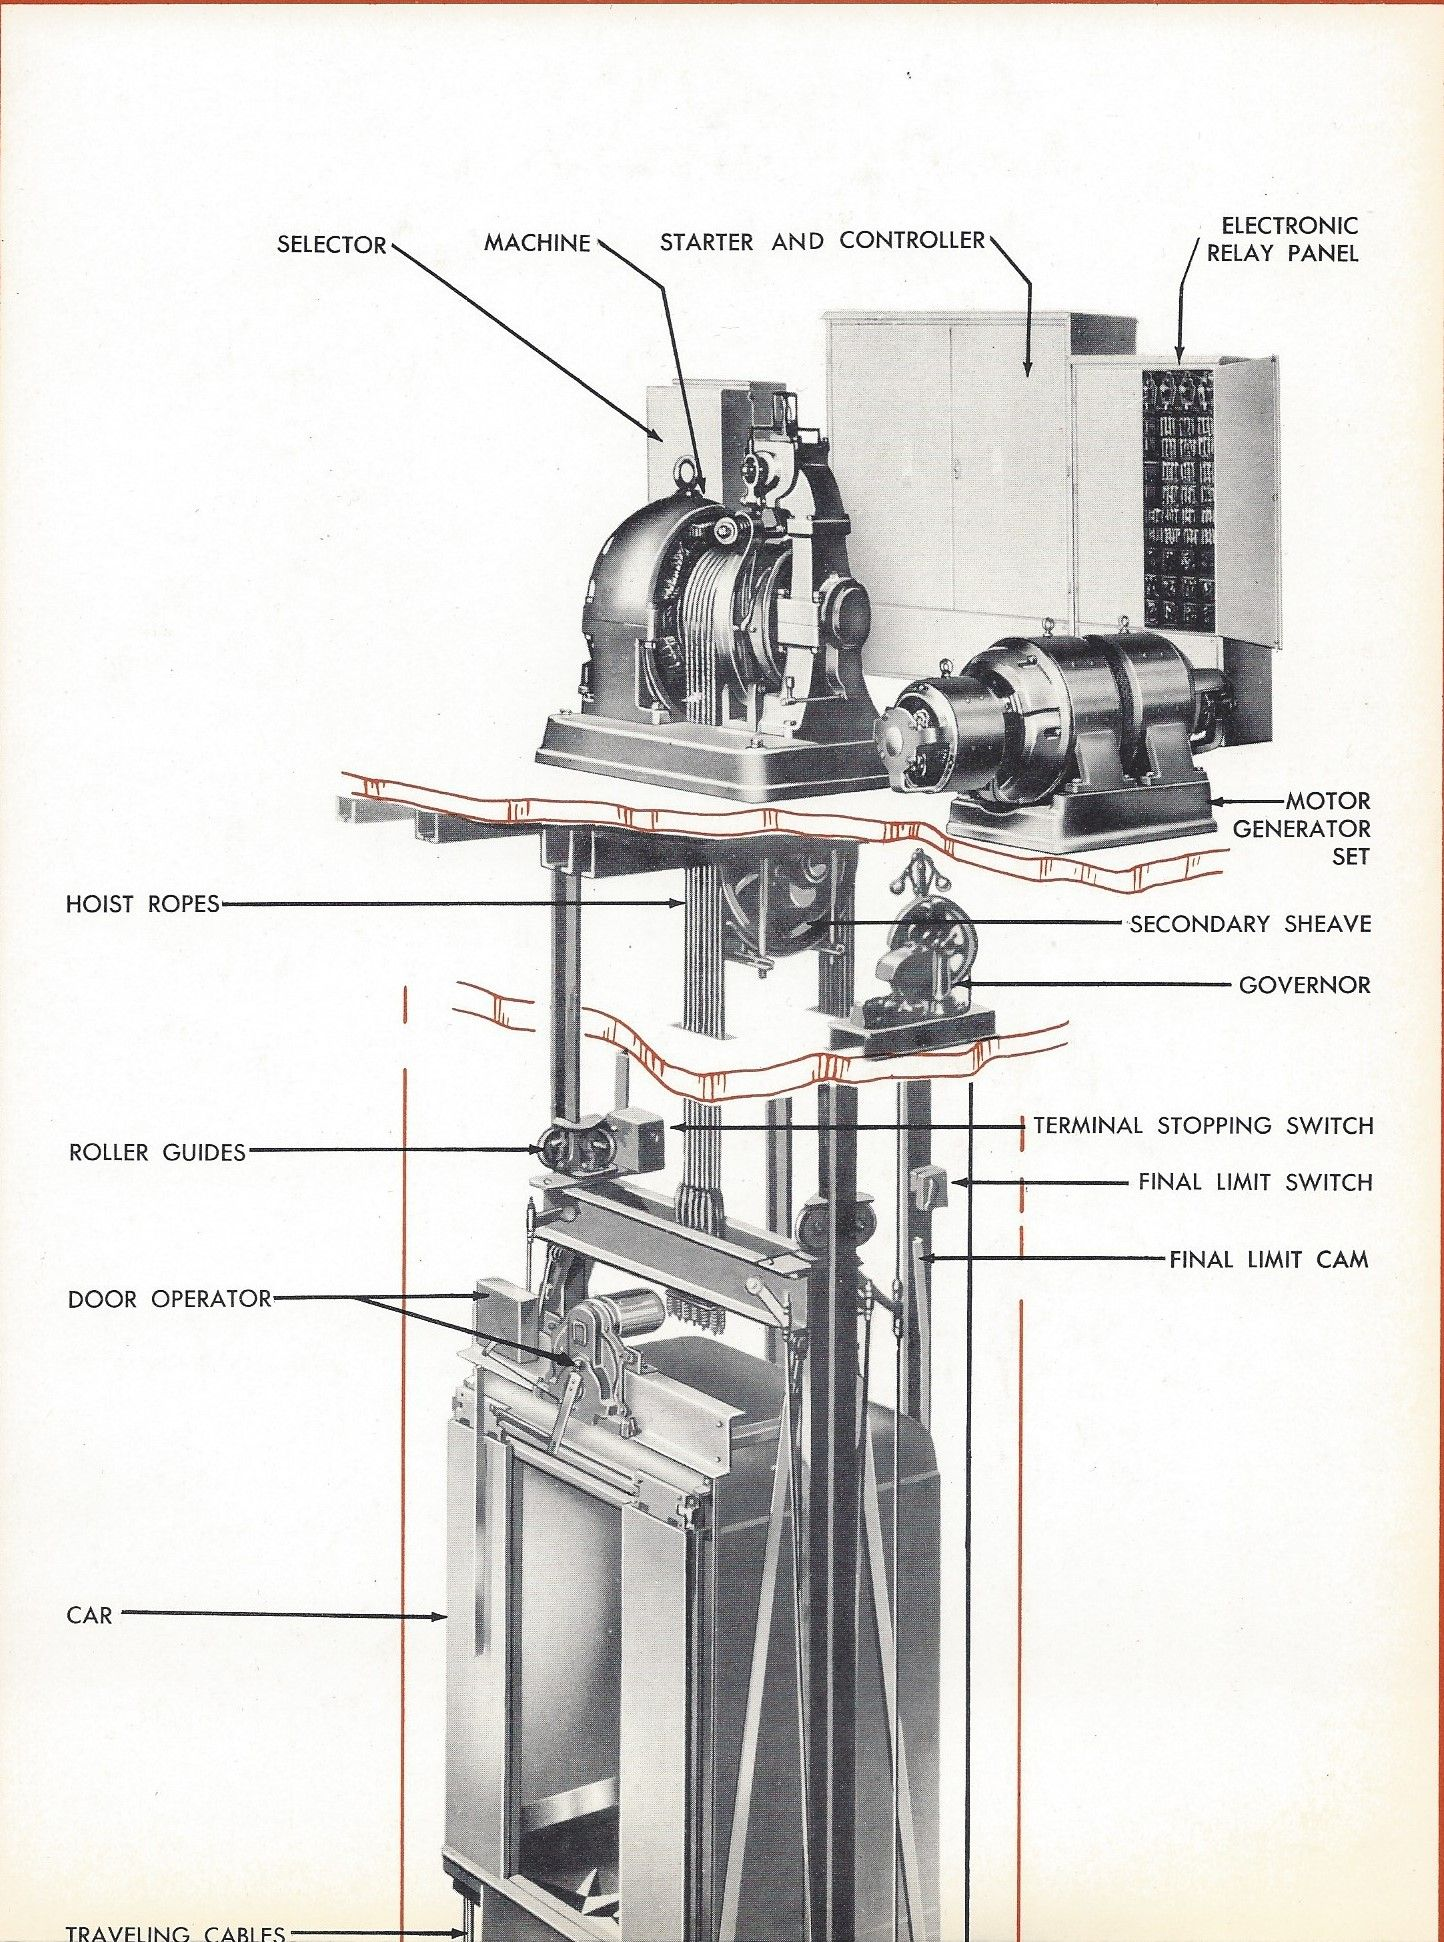 otis elevator company cutaway drawing from the 1950s elevators inotis elevator company cutaway drawing from the 1950s